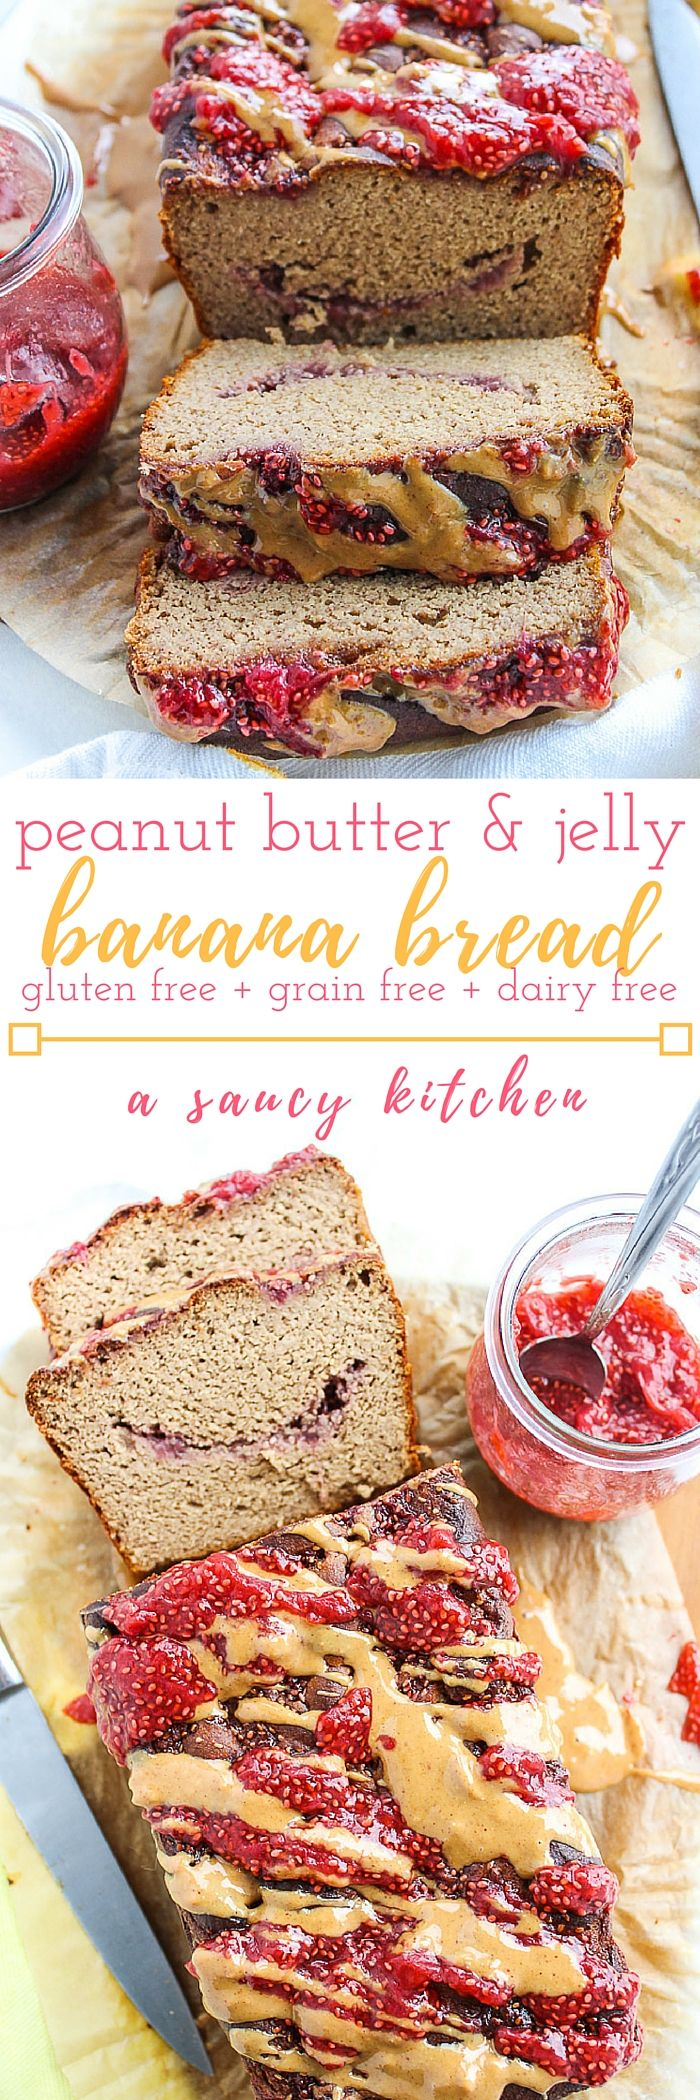 No mixing bowls needed for this Peanut Butter and Jelly Banana Bread! Swap out the peanut butter for almond butter to make this Paleo friendly